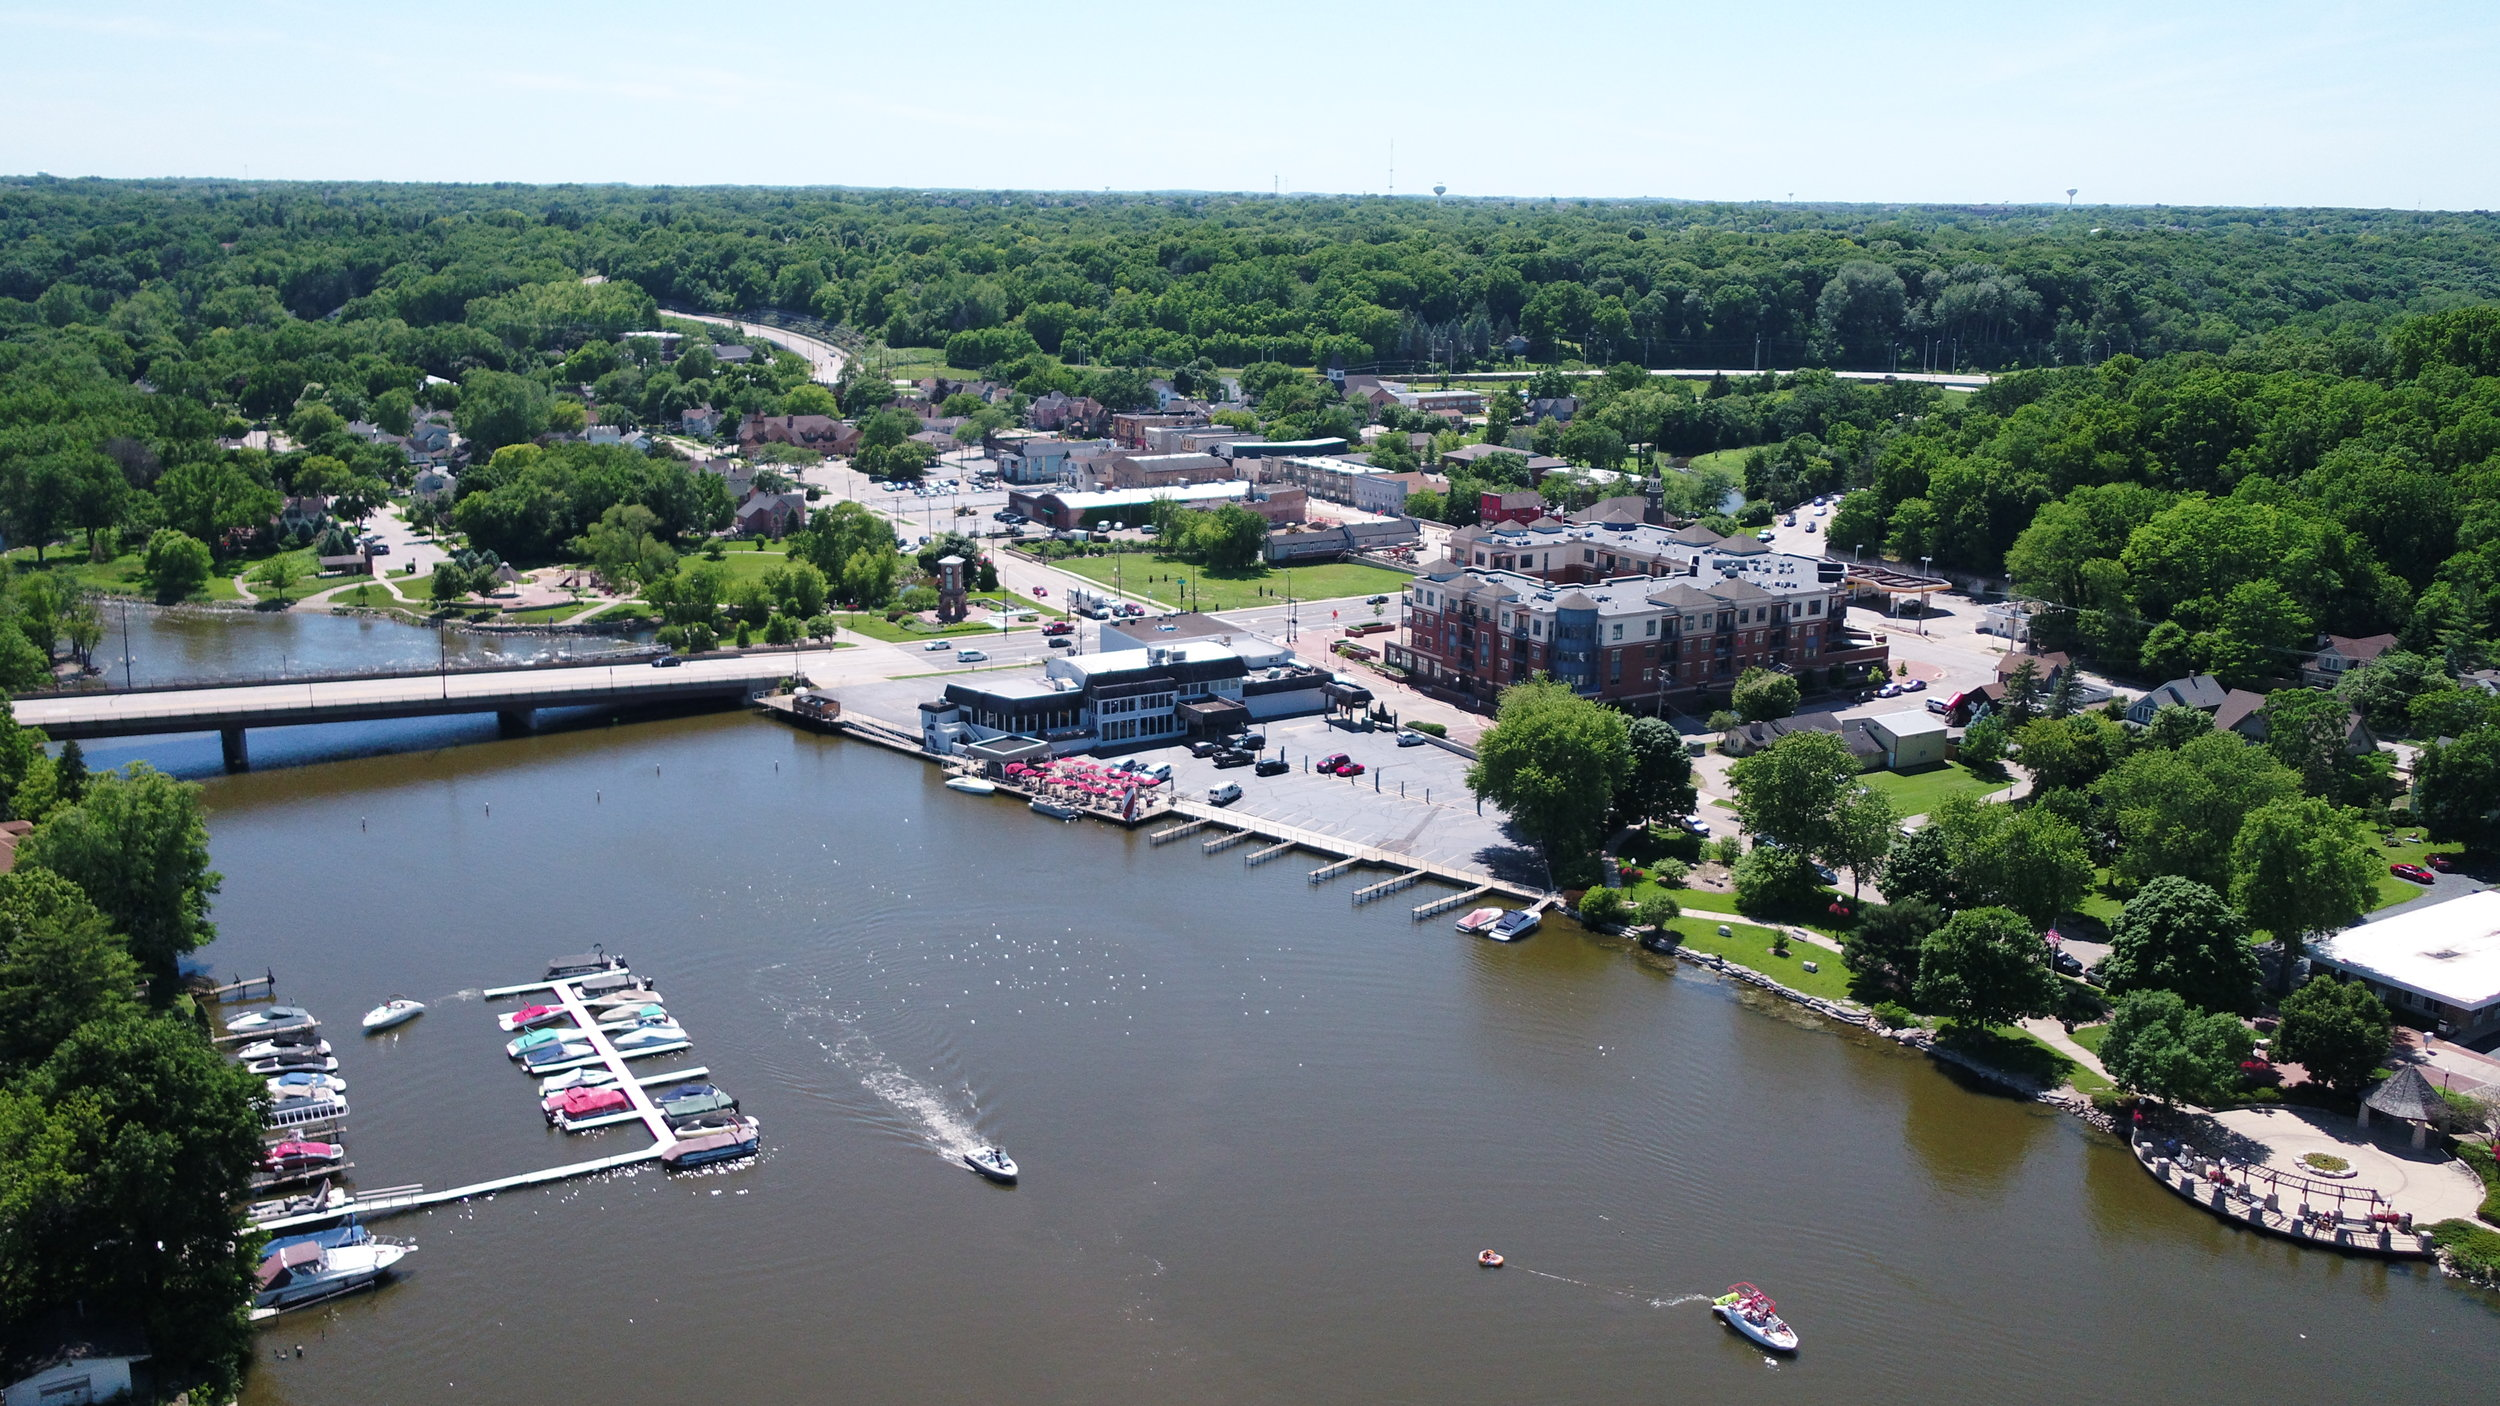 View of Old Town Algonquin from above the Fox River